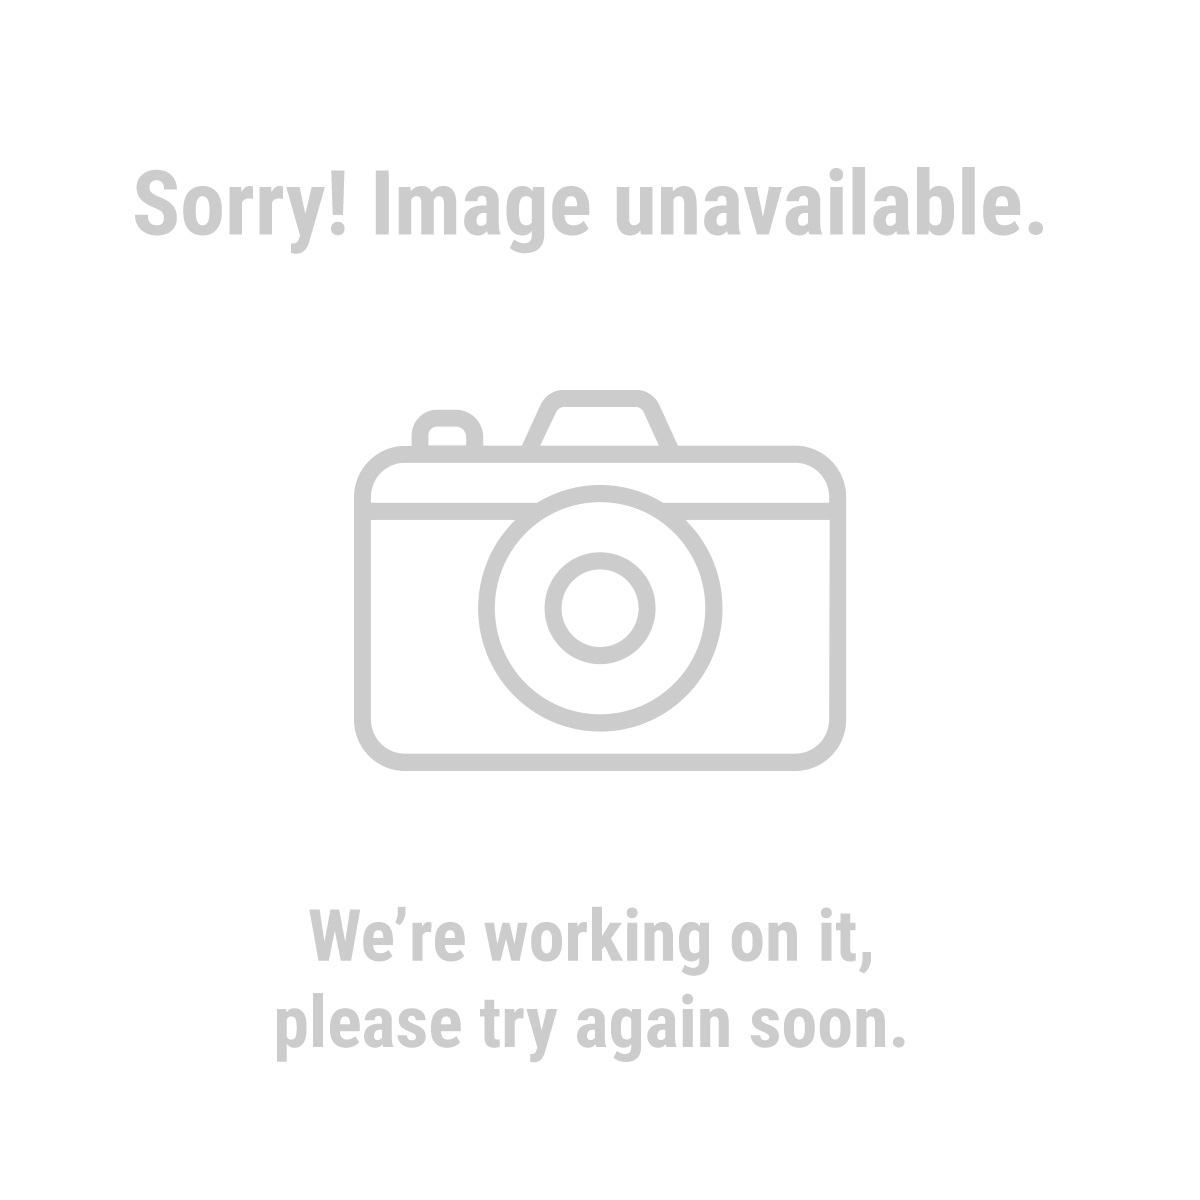 Warrior® 62558 1/4 in. - 1 in. Forstner Drill Bit Set With 3/8 in. Shanks 7 Pc